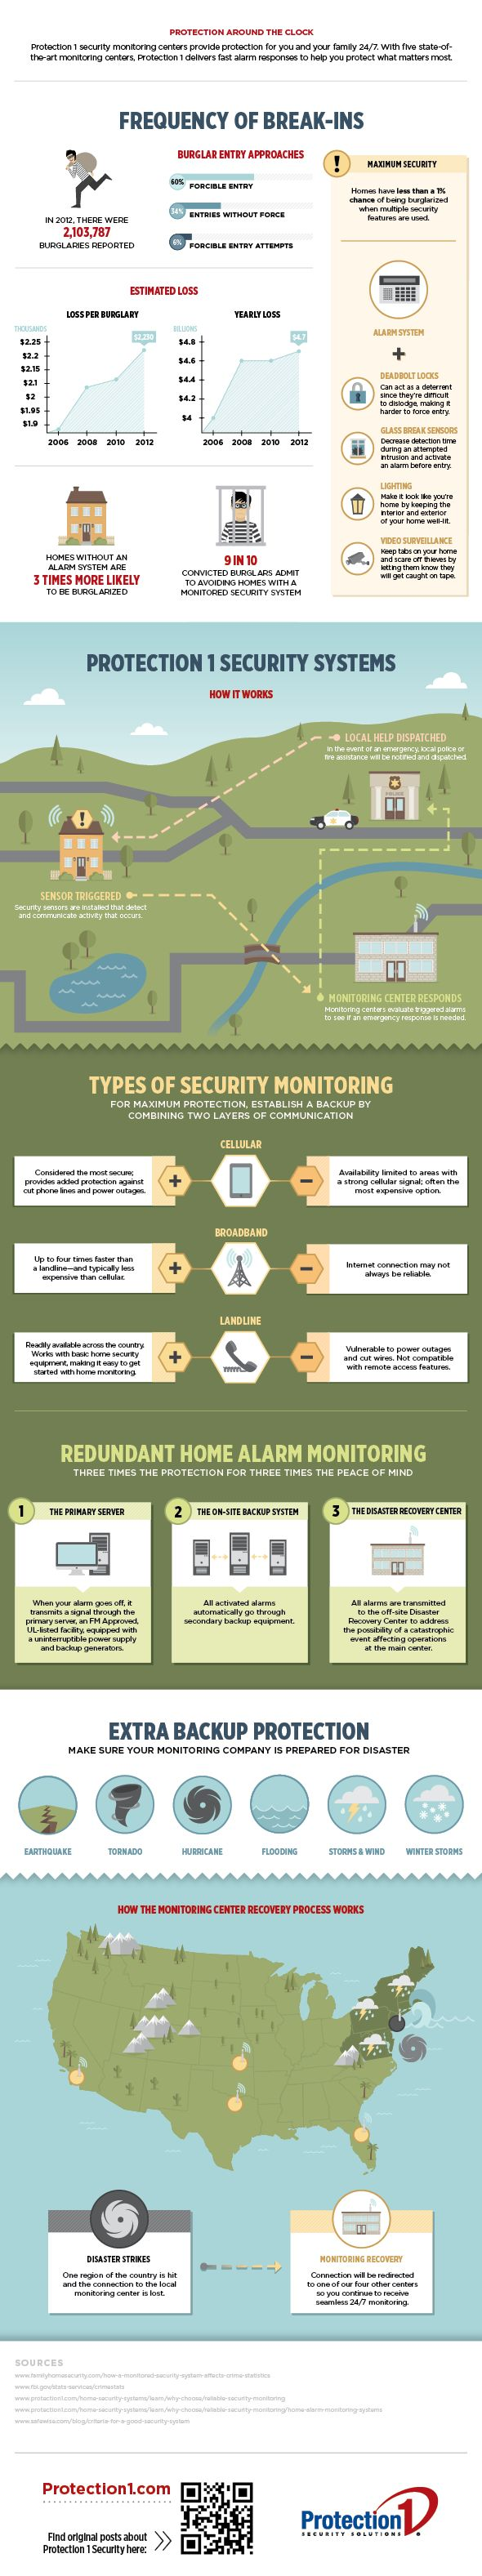 20 best home security tips images on pinterest | security tips